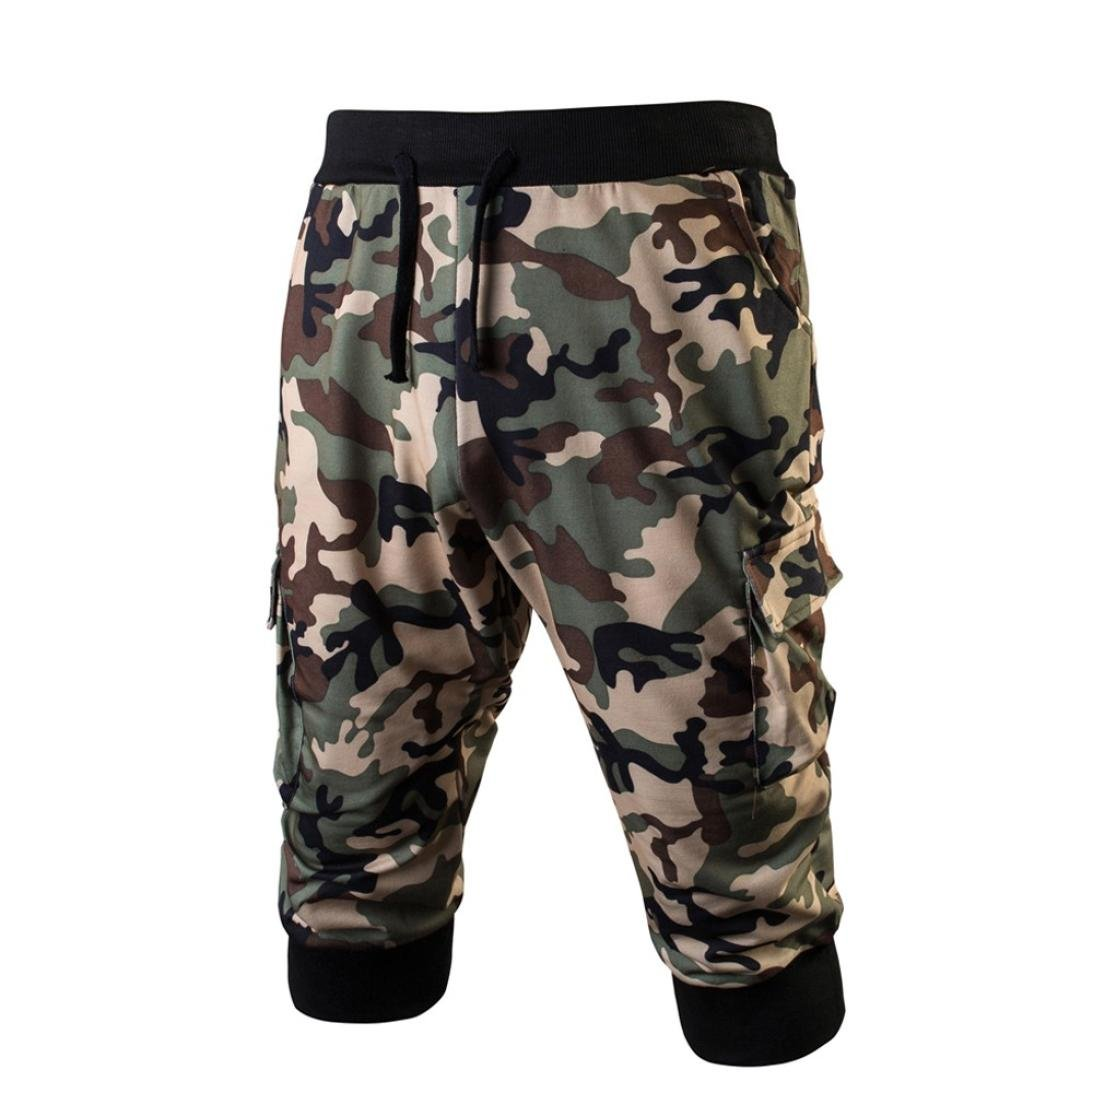 Realdo Mens Casual Camouflage Trousers, Daily Elastic Stretchy Bodybuilding Sweatpants Camo Sport Gym Fitness Jogging(Green,Large)